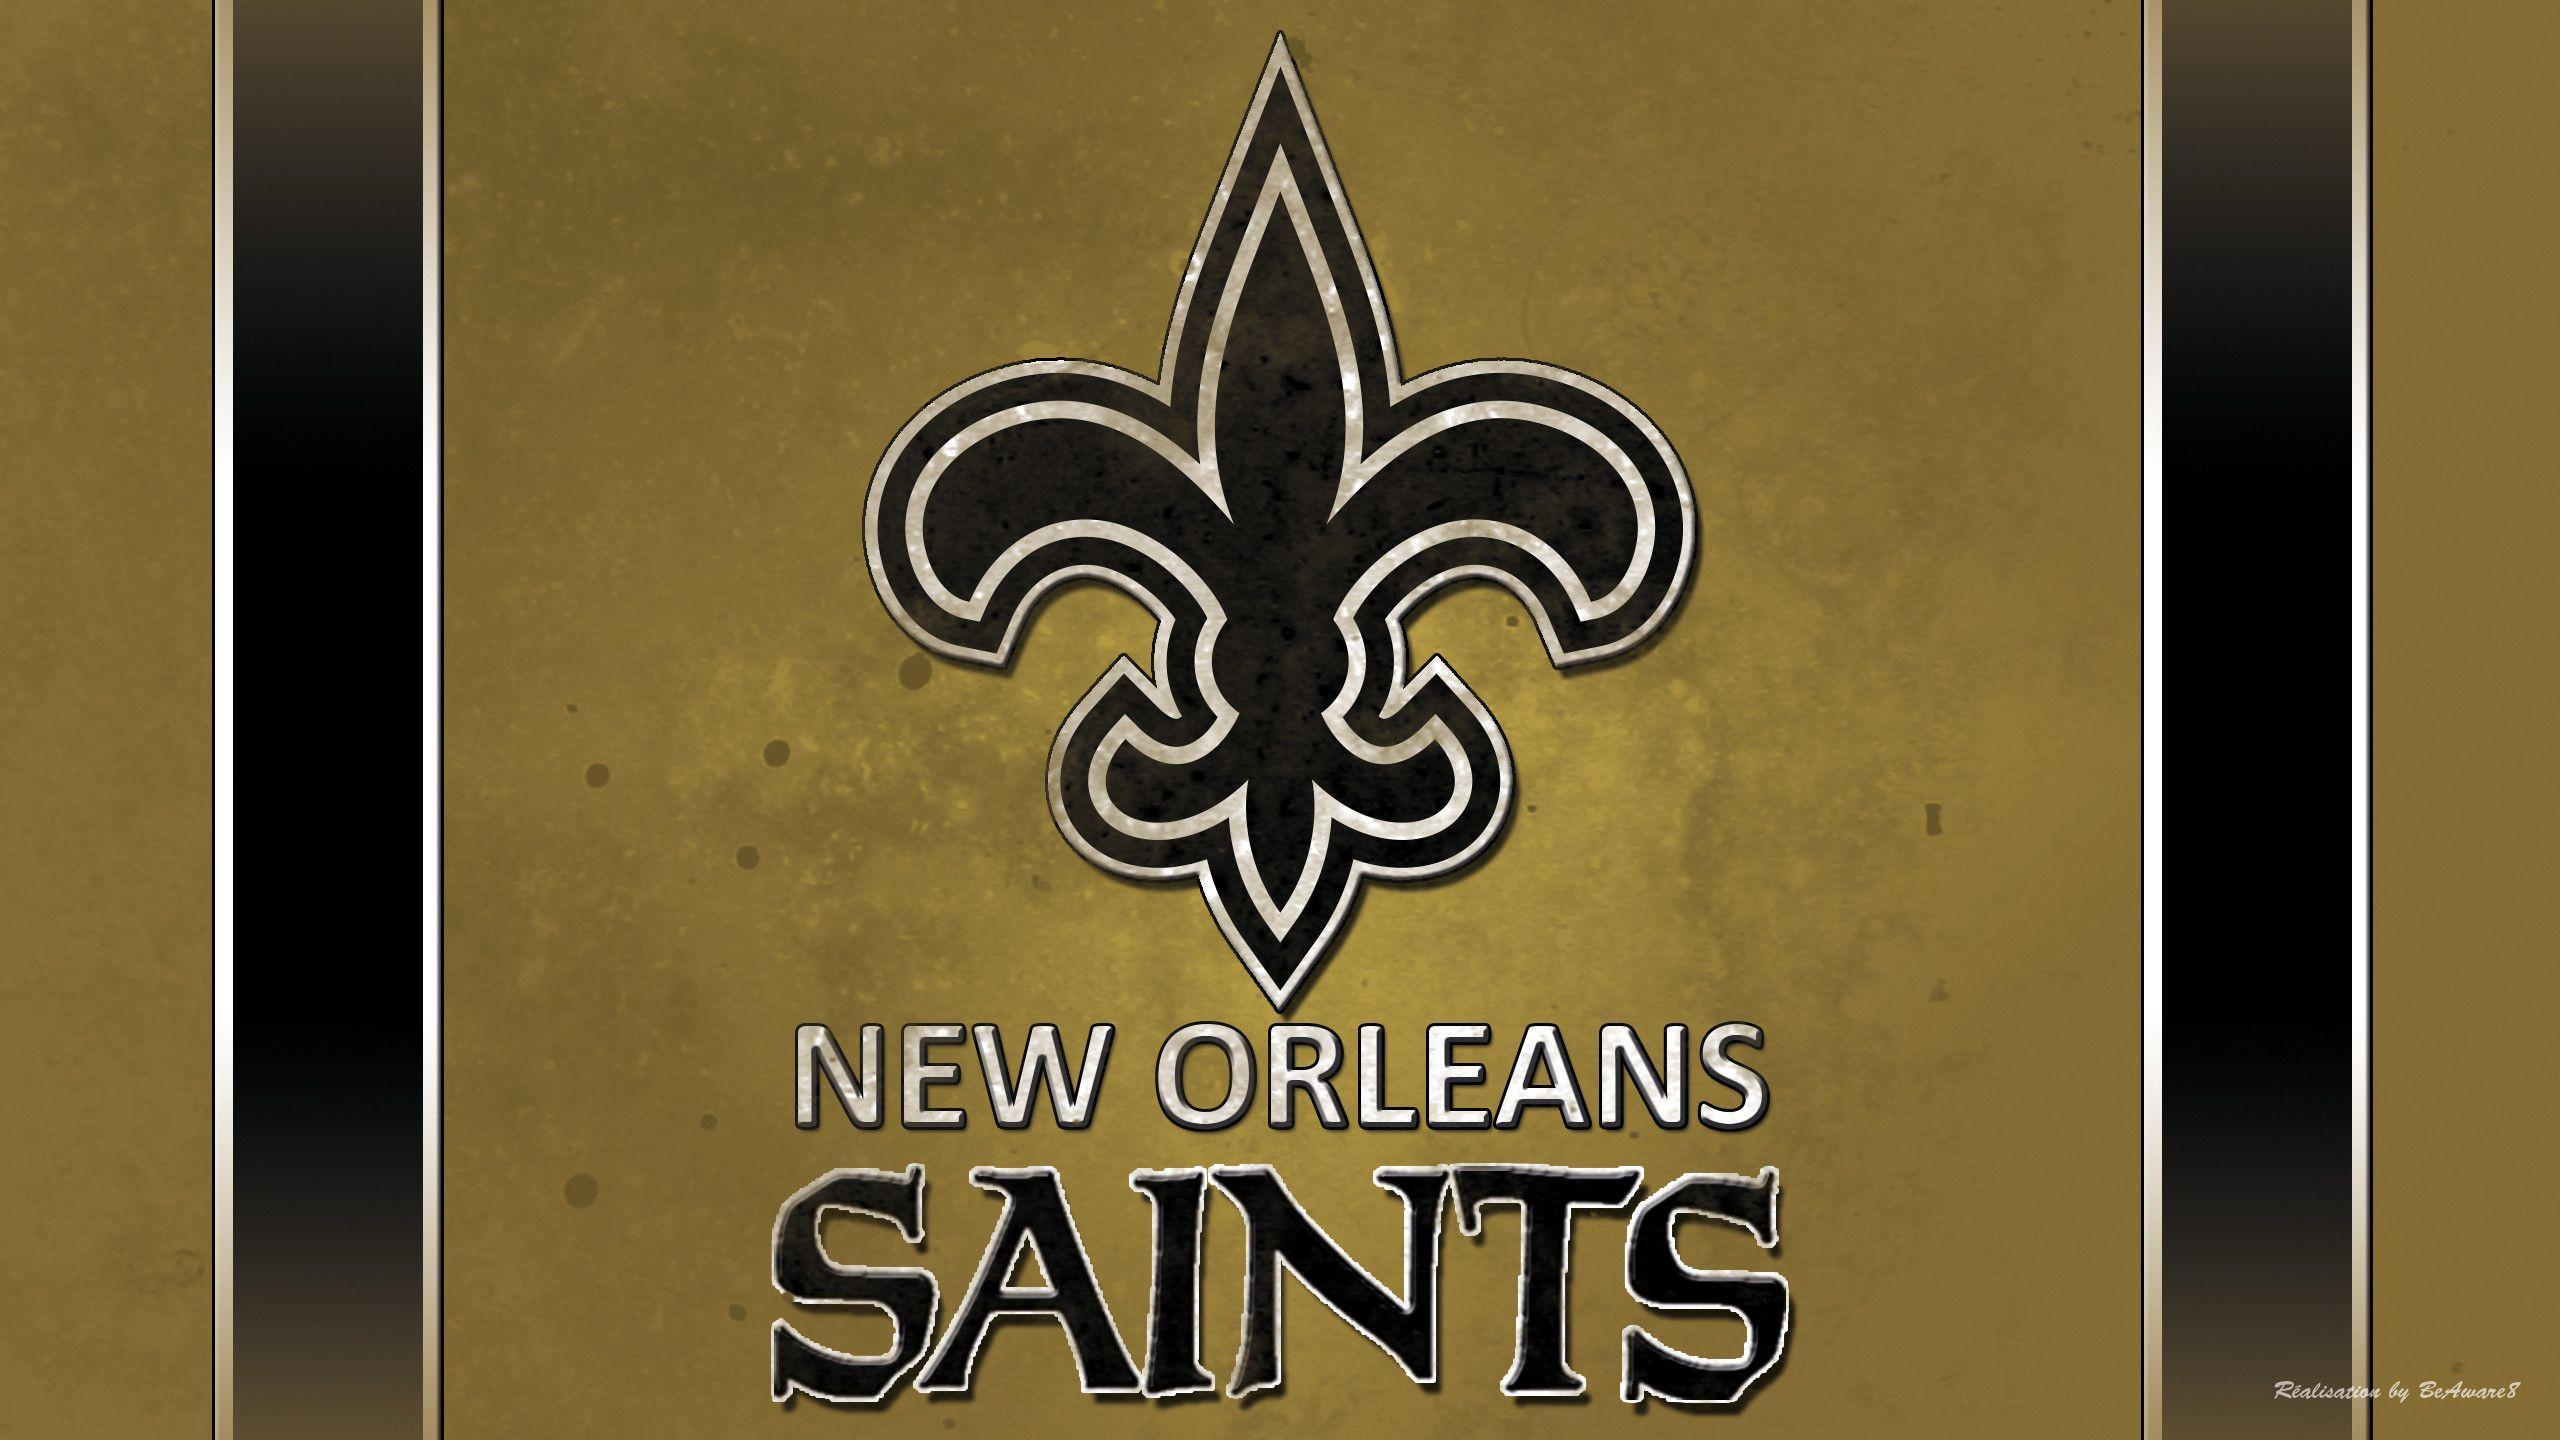 New orleans saints wallpaper logo